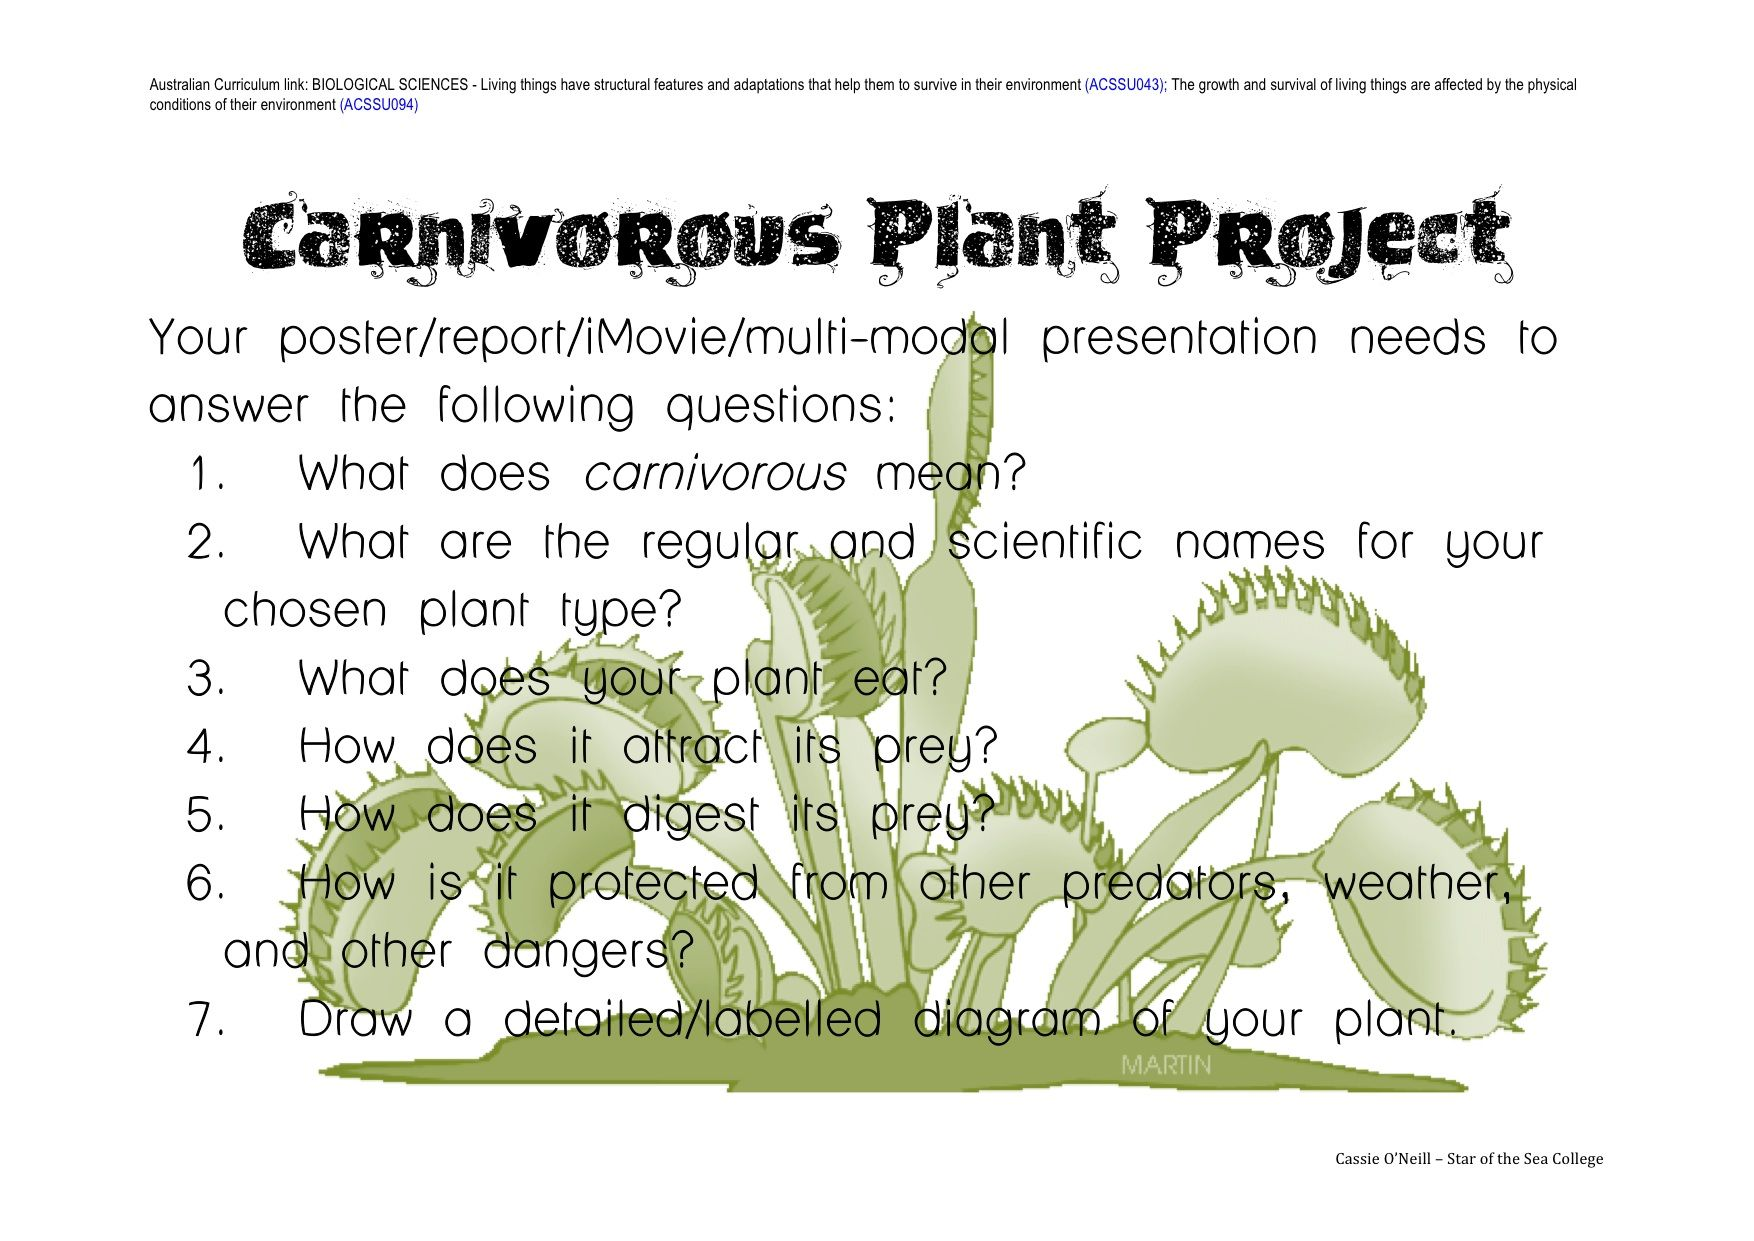 Carnivorous Plants Project Questions